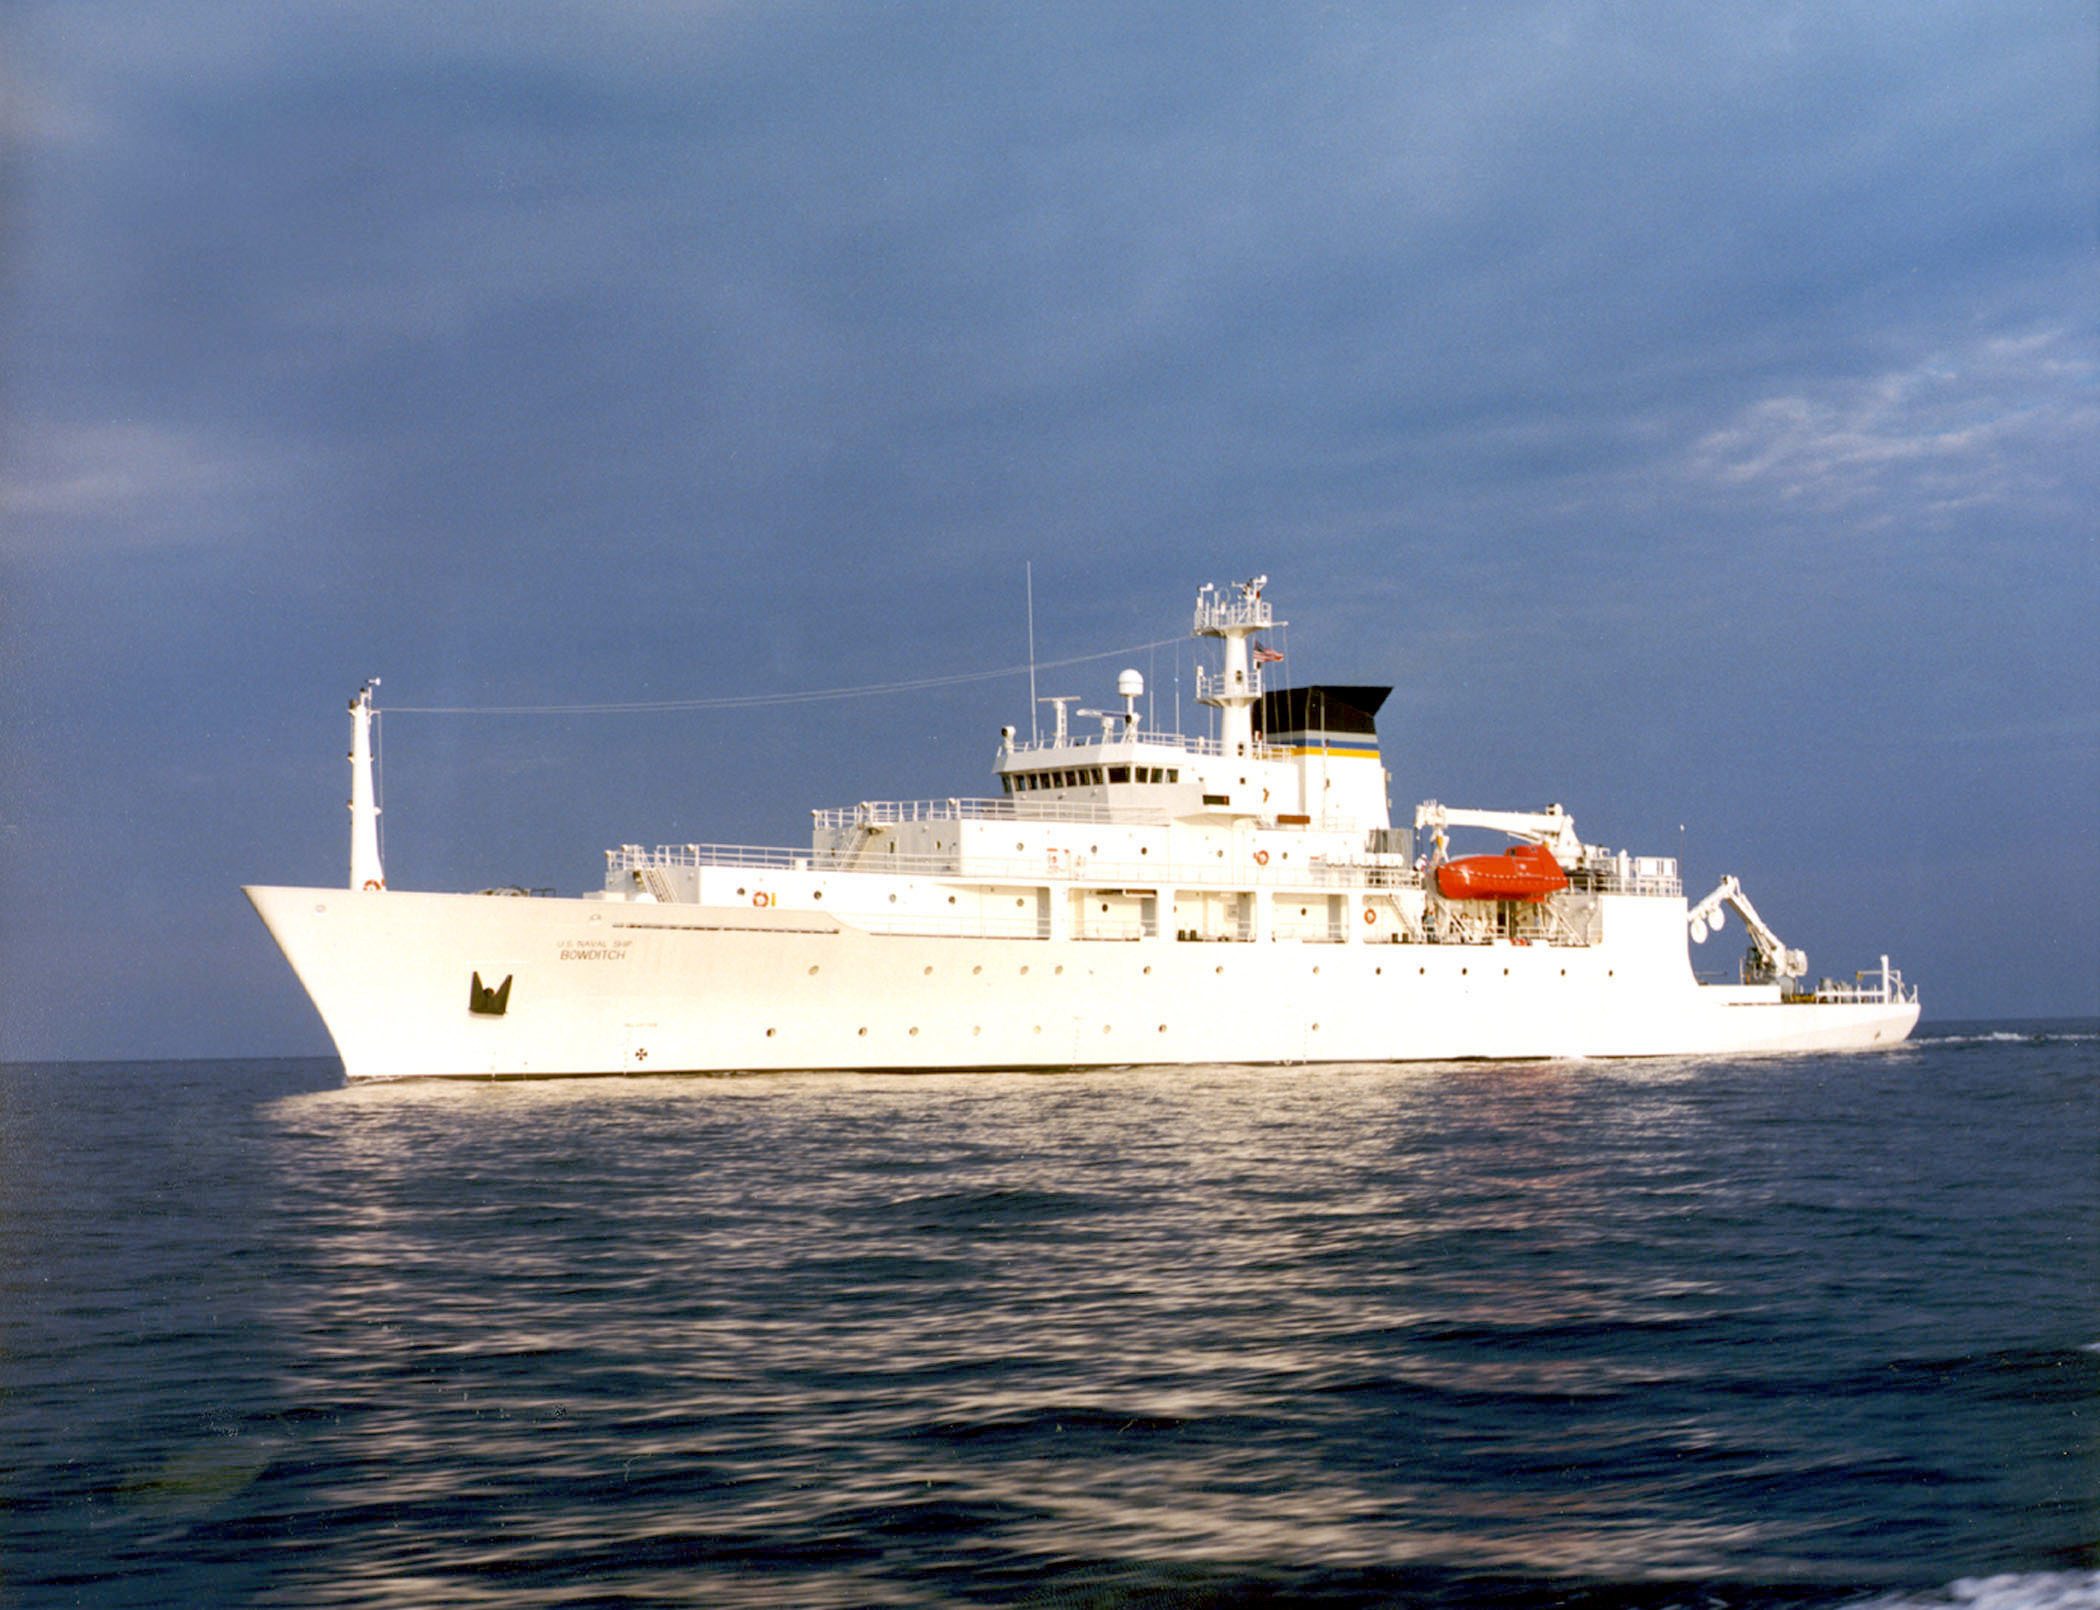 The USNS Bowditch, a T-AGS 60 Class Oceanographic Survey Ship, sails in open water.